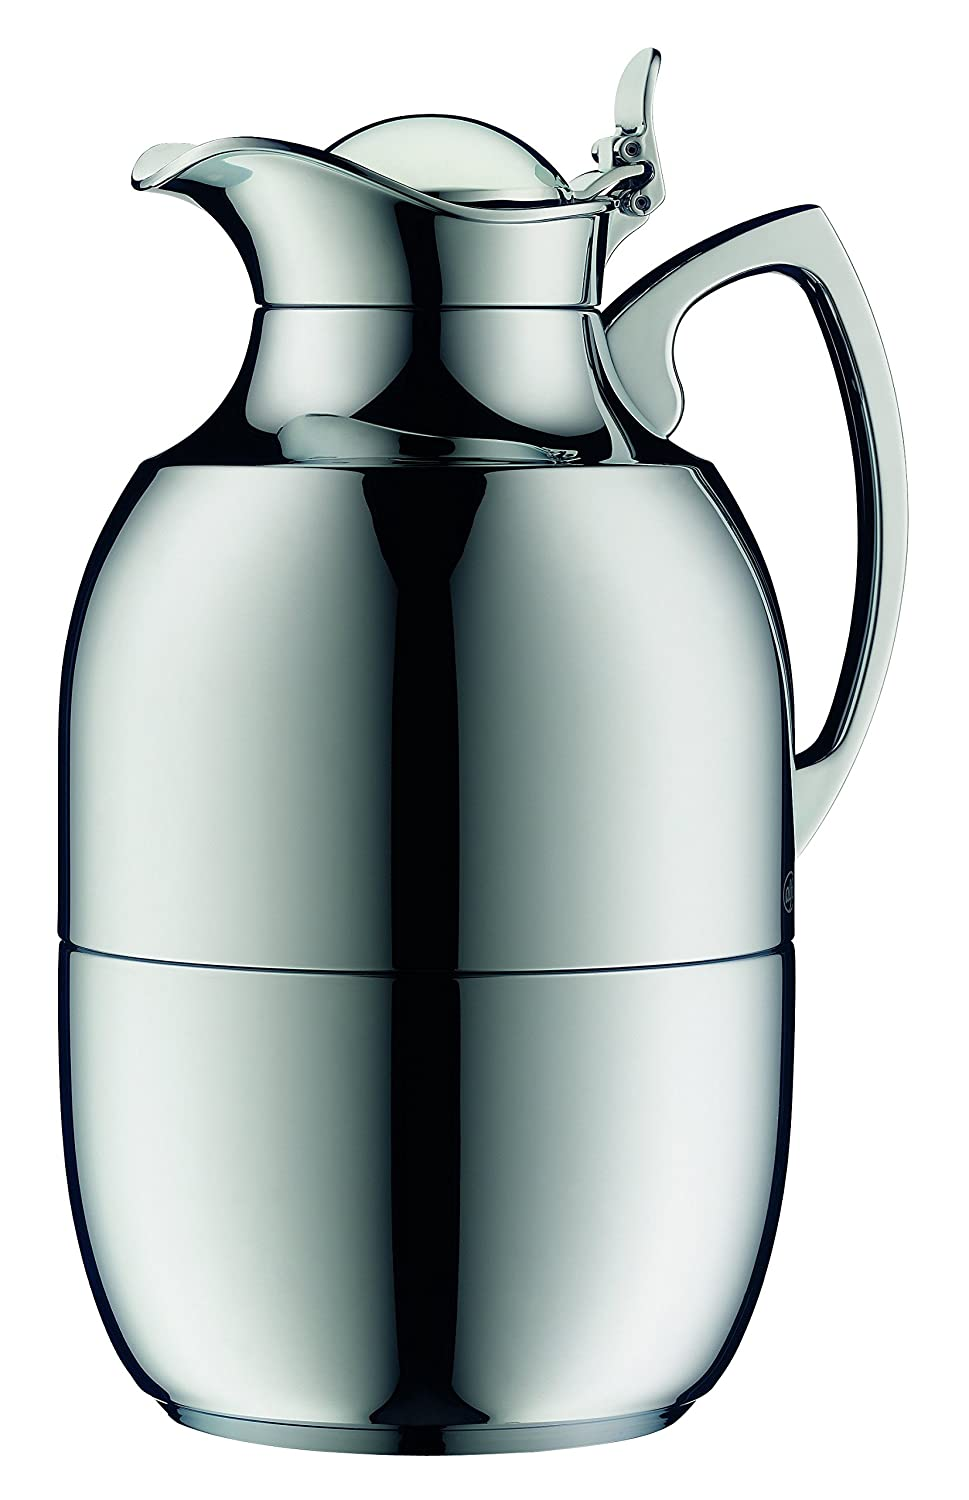 Alfi Juwel Thermos Insulating Jug, Stainless Steel, chrome, 1.5 L 0572000150